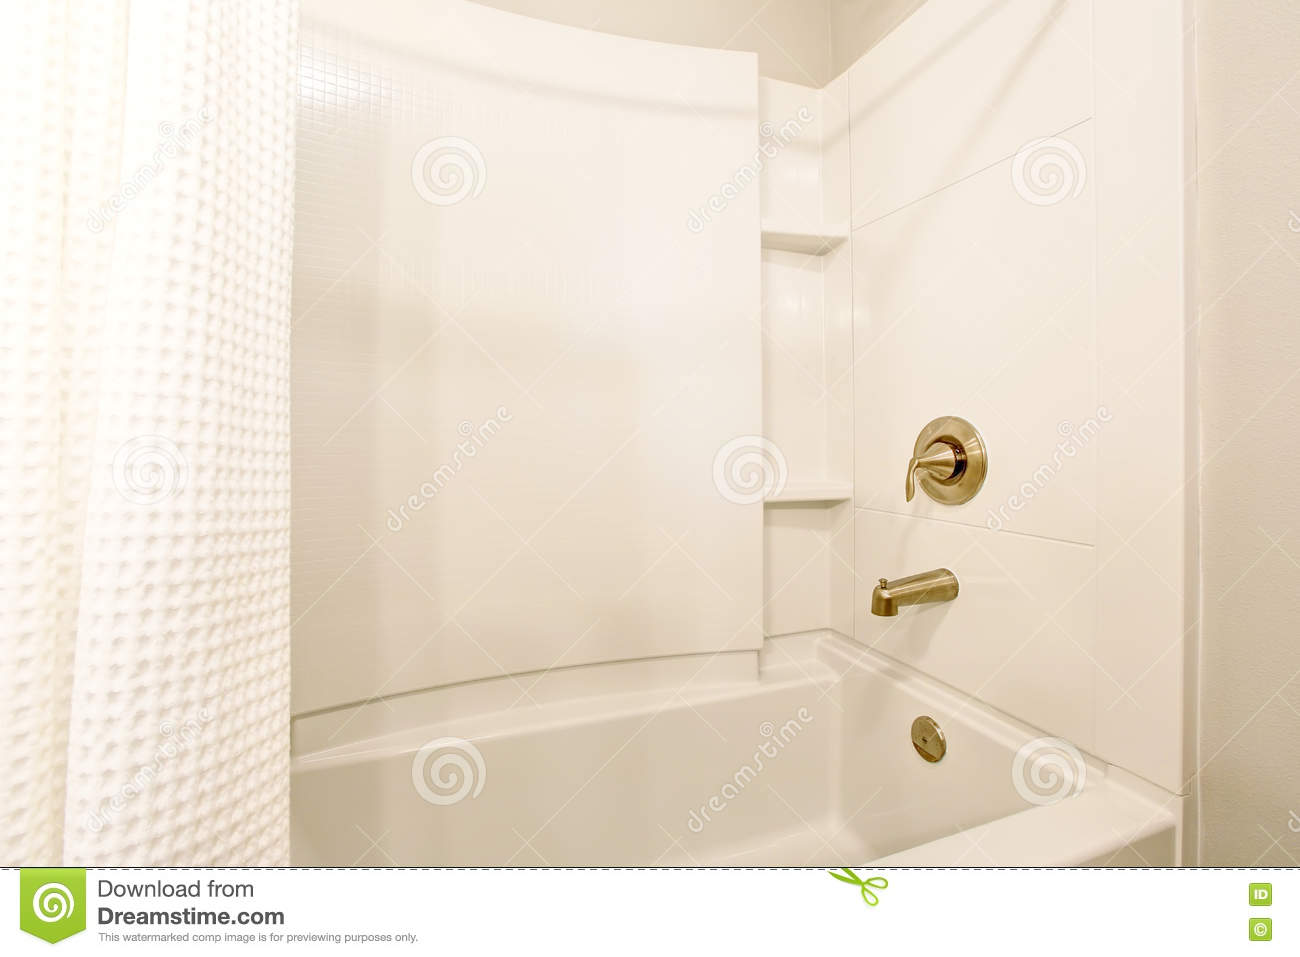 Usa Shower Curtain Bathroom Interior View Of White Bath Tub And White Shower Curtain